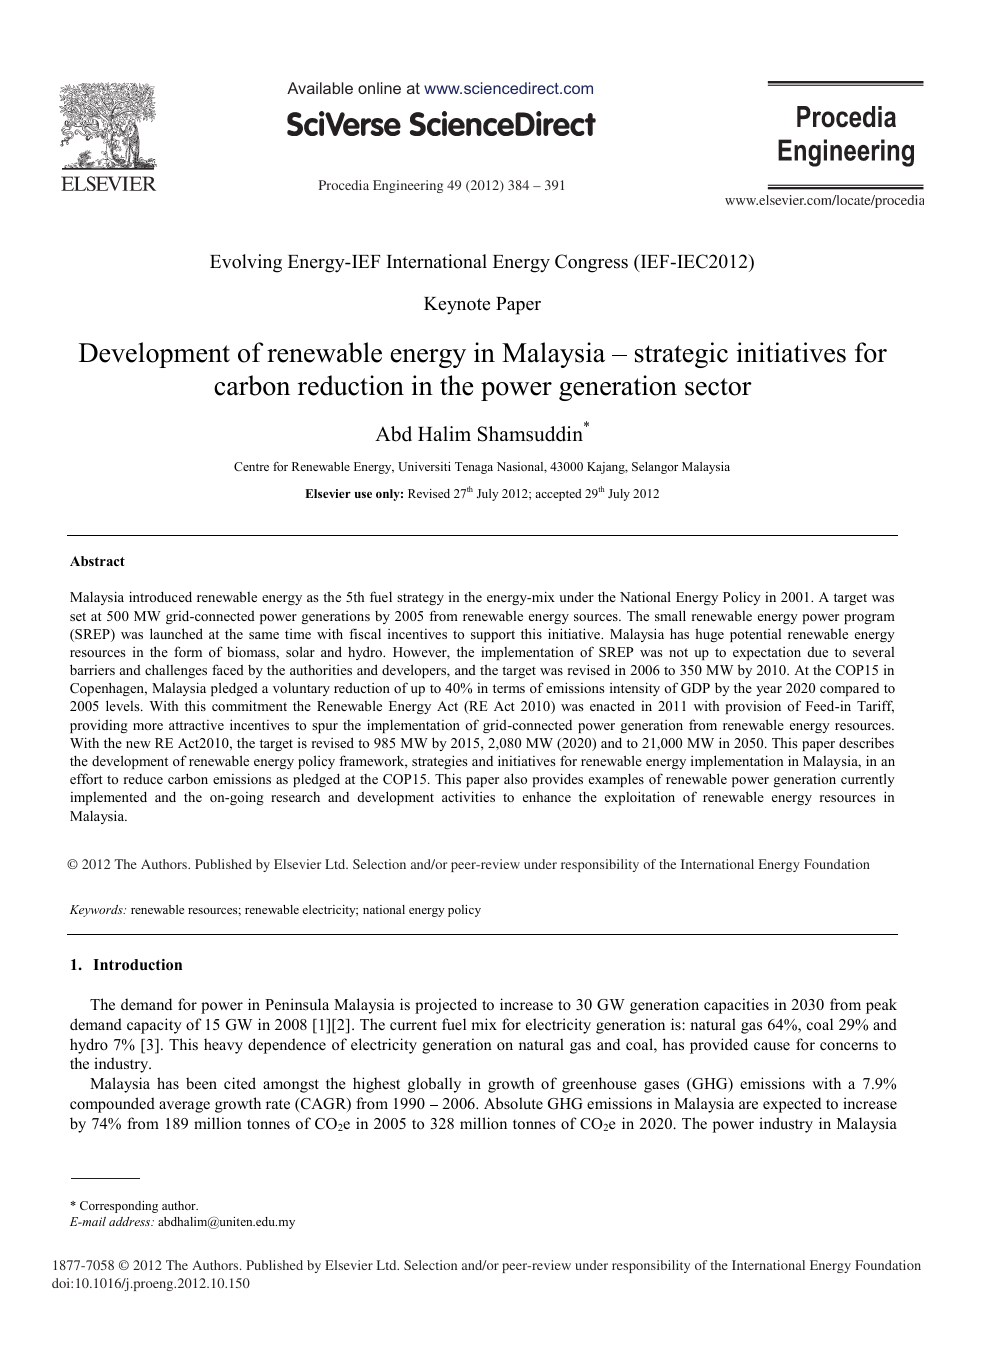 Development Of Renewable Energy In Malaysia Strategic Initiatives For Carbon Reduction In The Power Generation Sector Topic Of Research Paper In Earth And Related Environmental Sciences Download Scholarly Article Pdf And Read